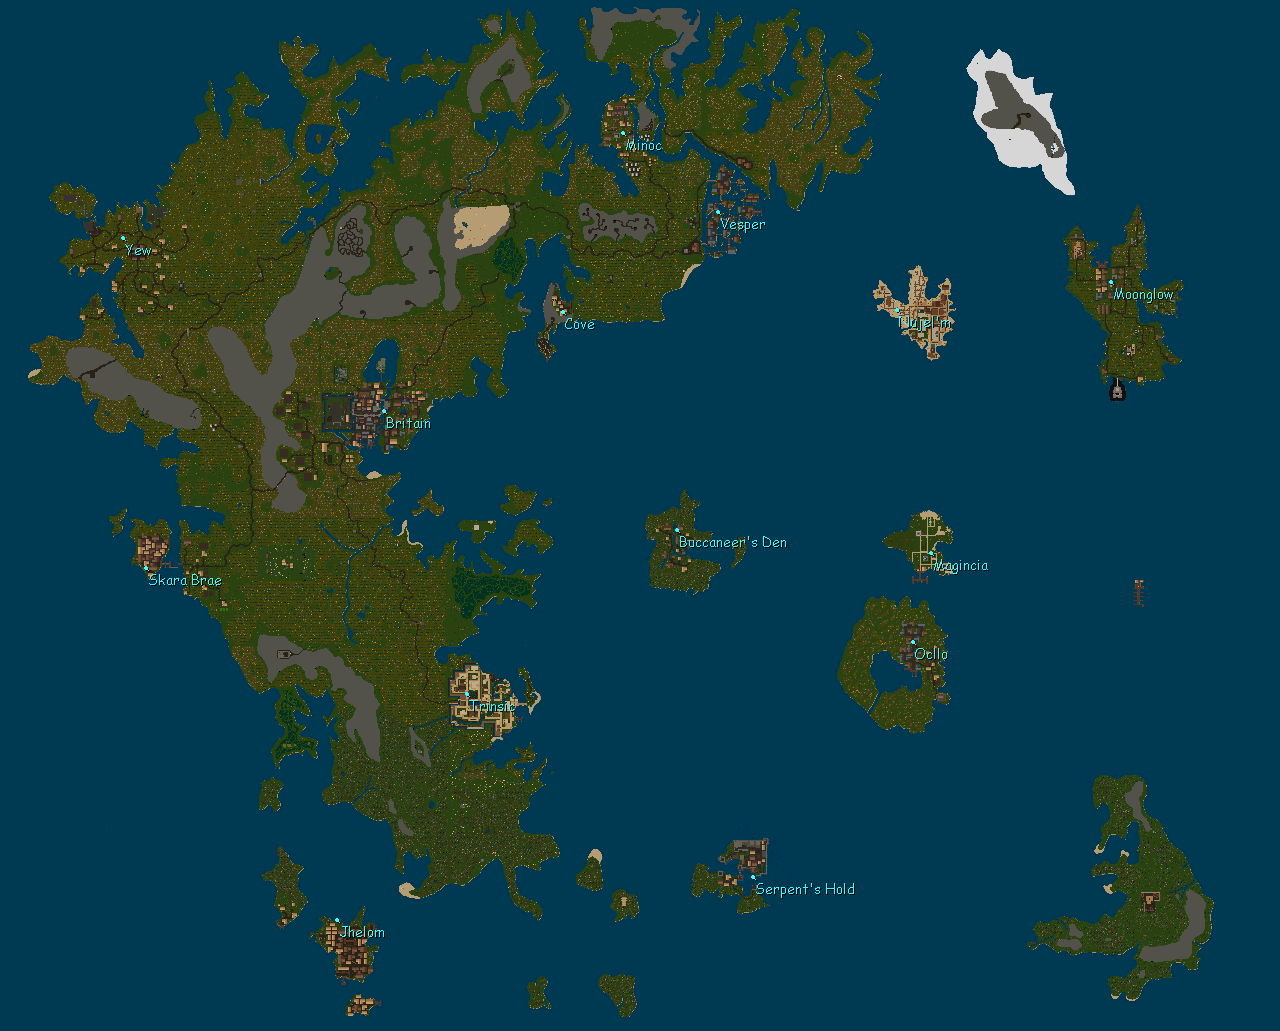 Online World Map images